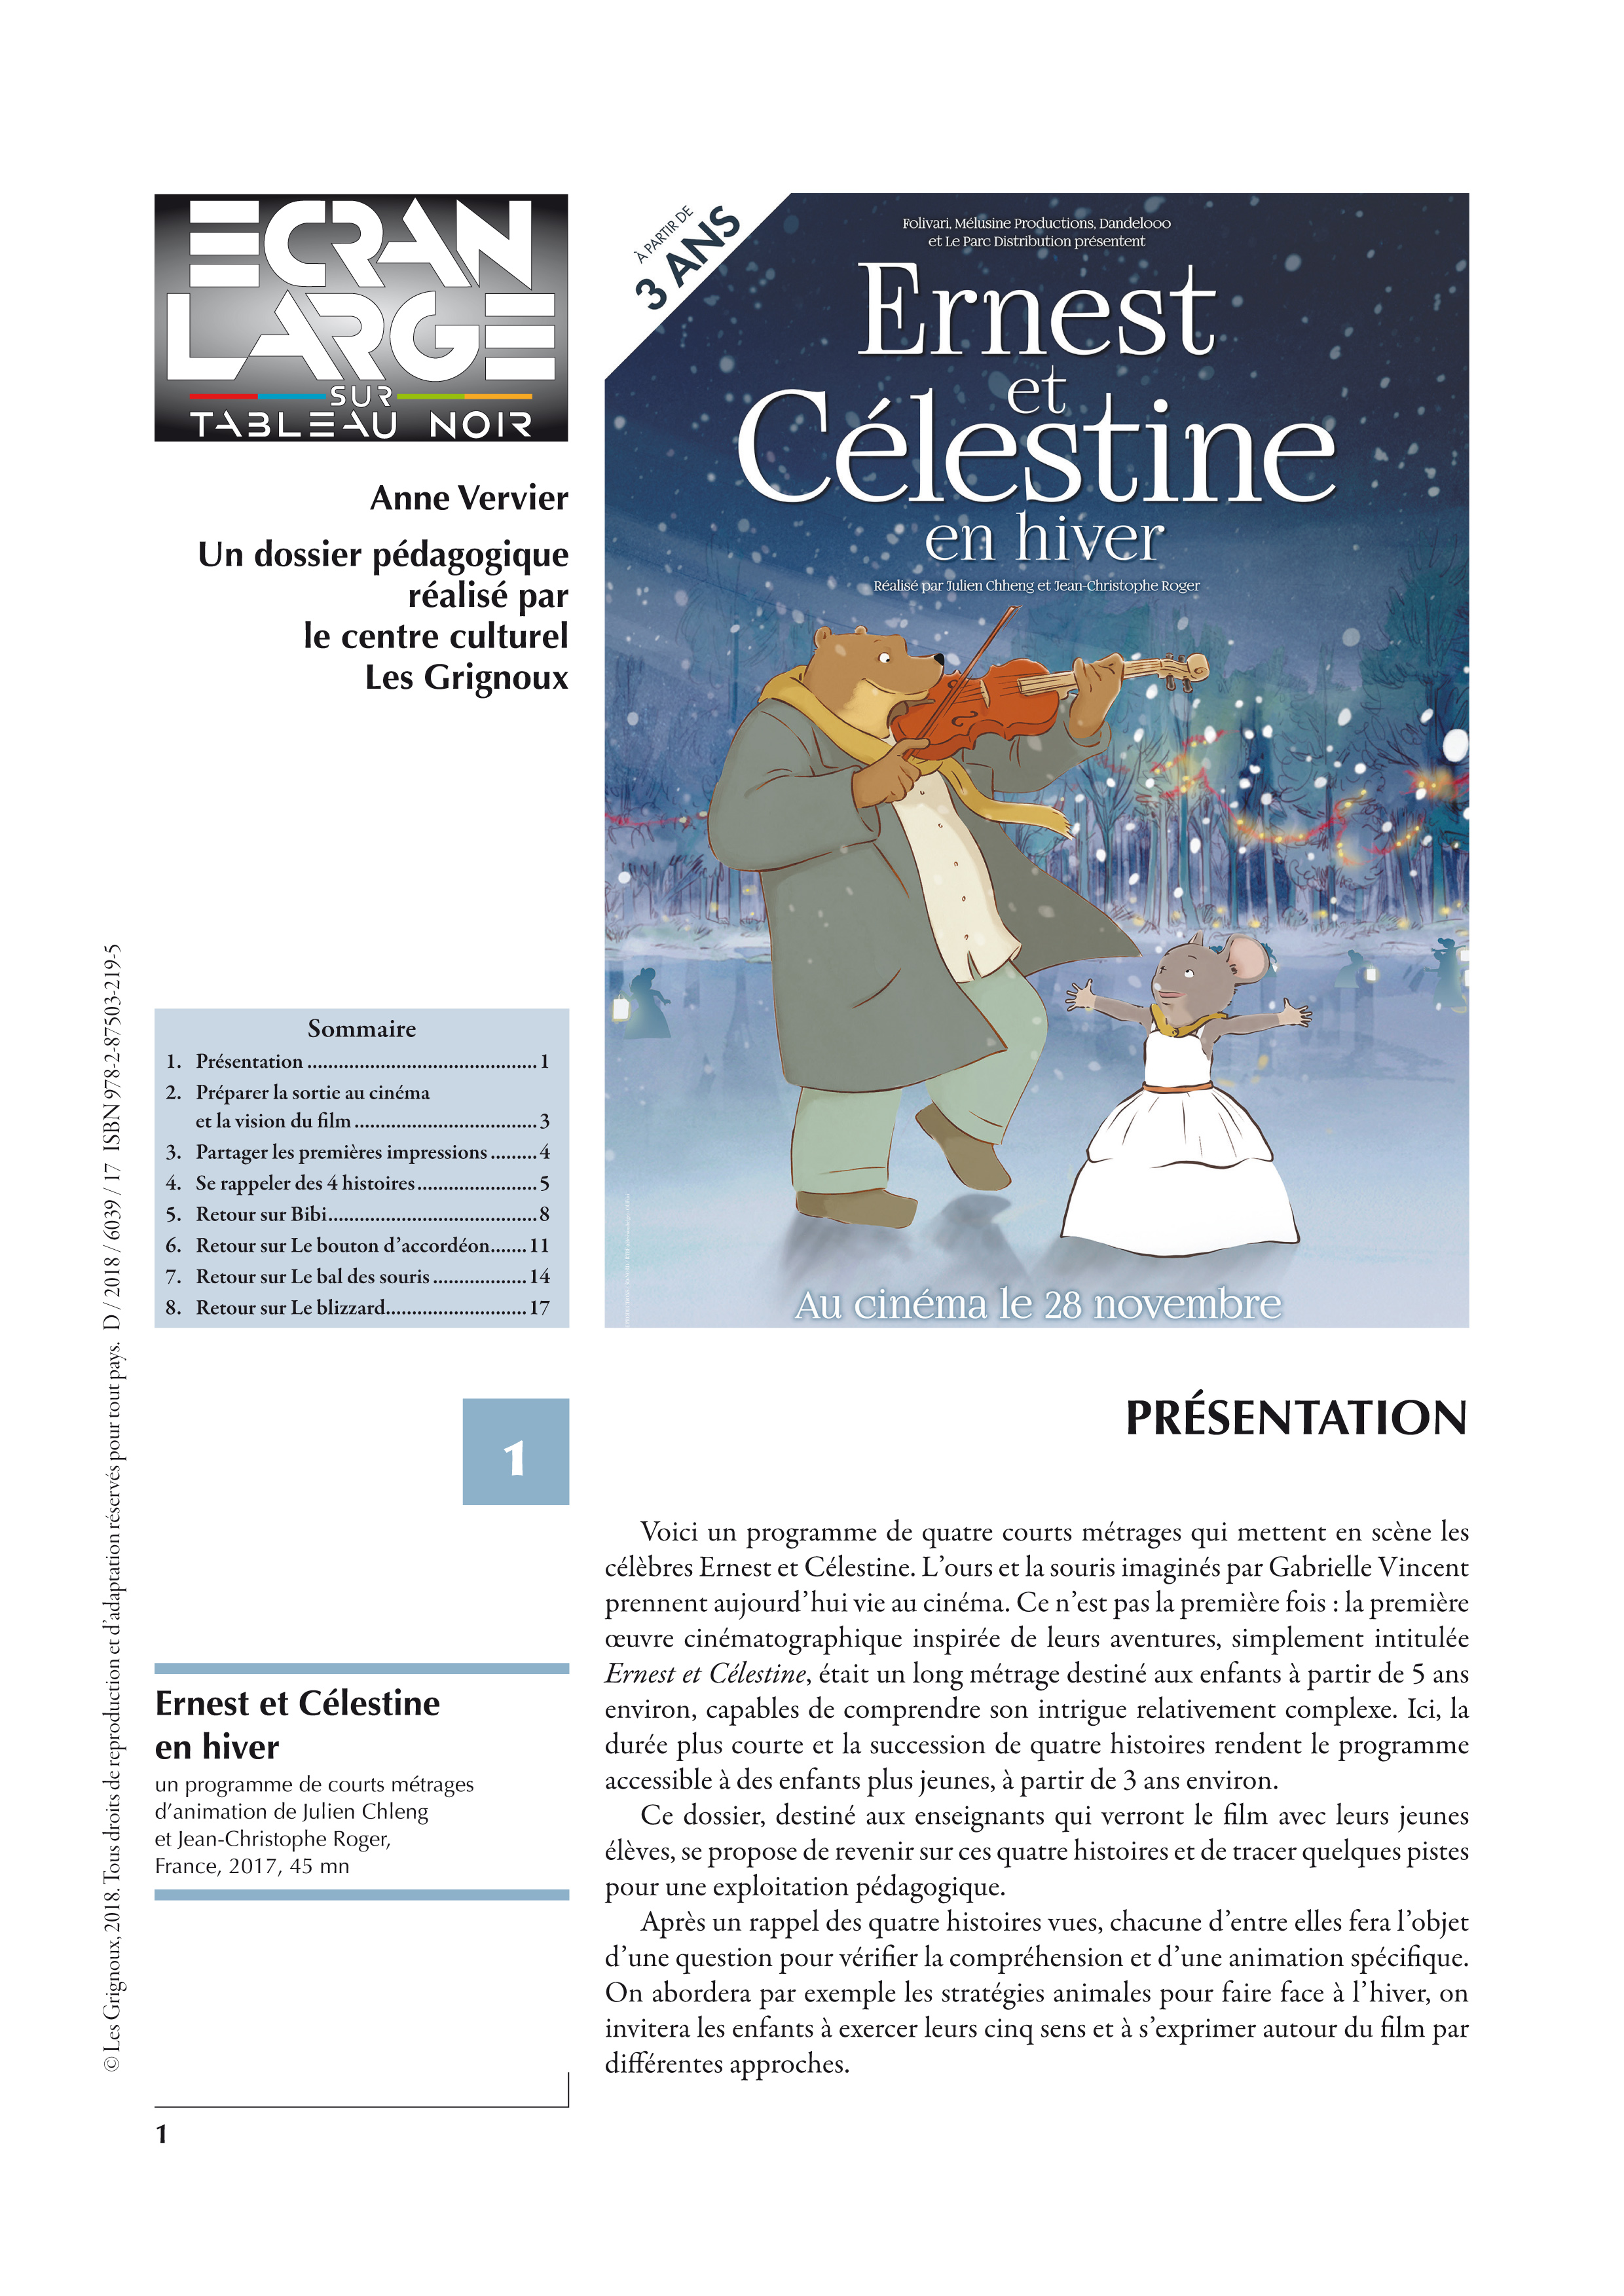 affiche du dossier Ernest et Célestine en hiver